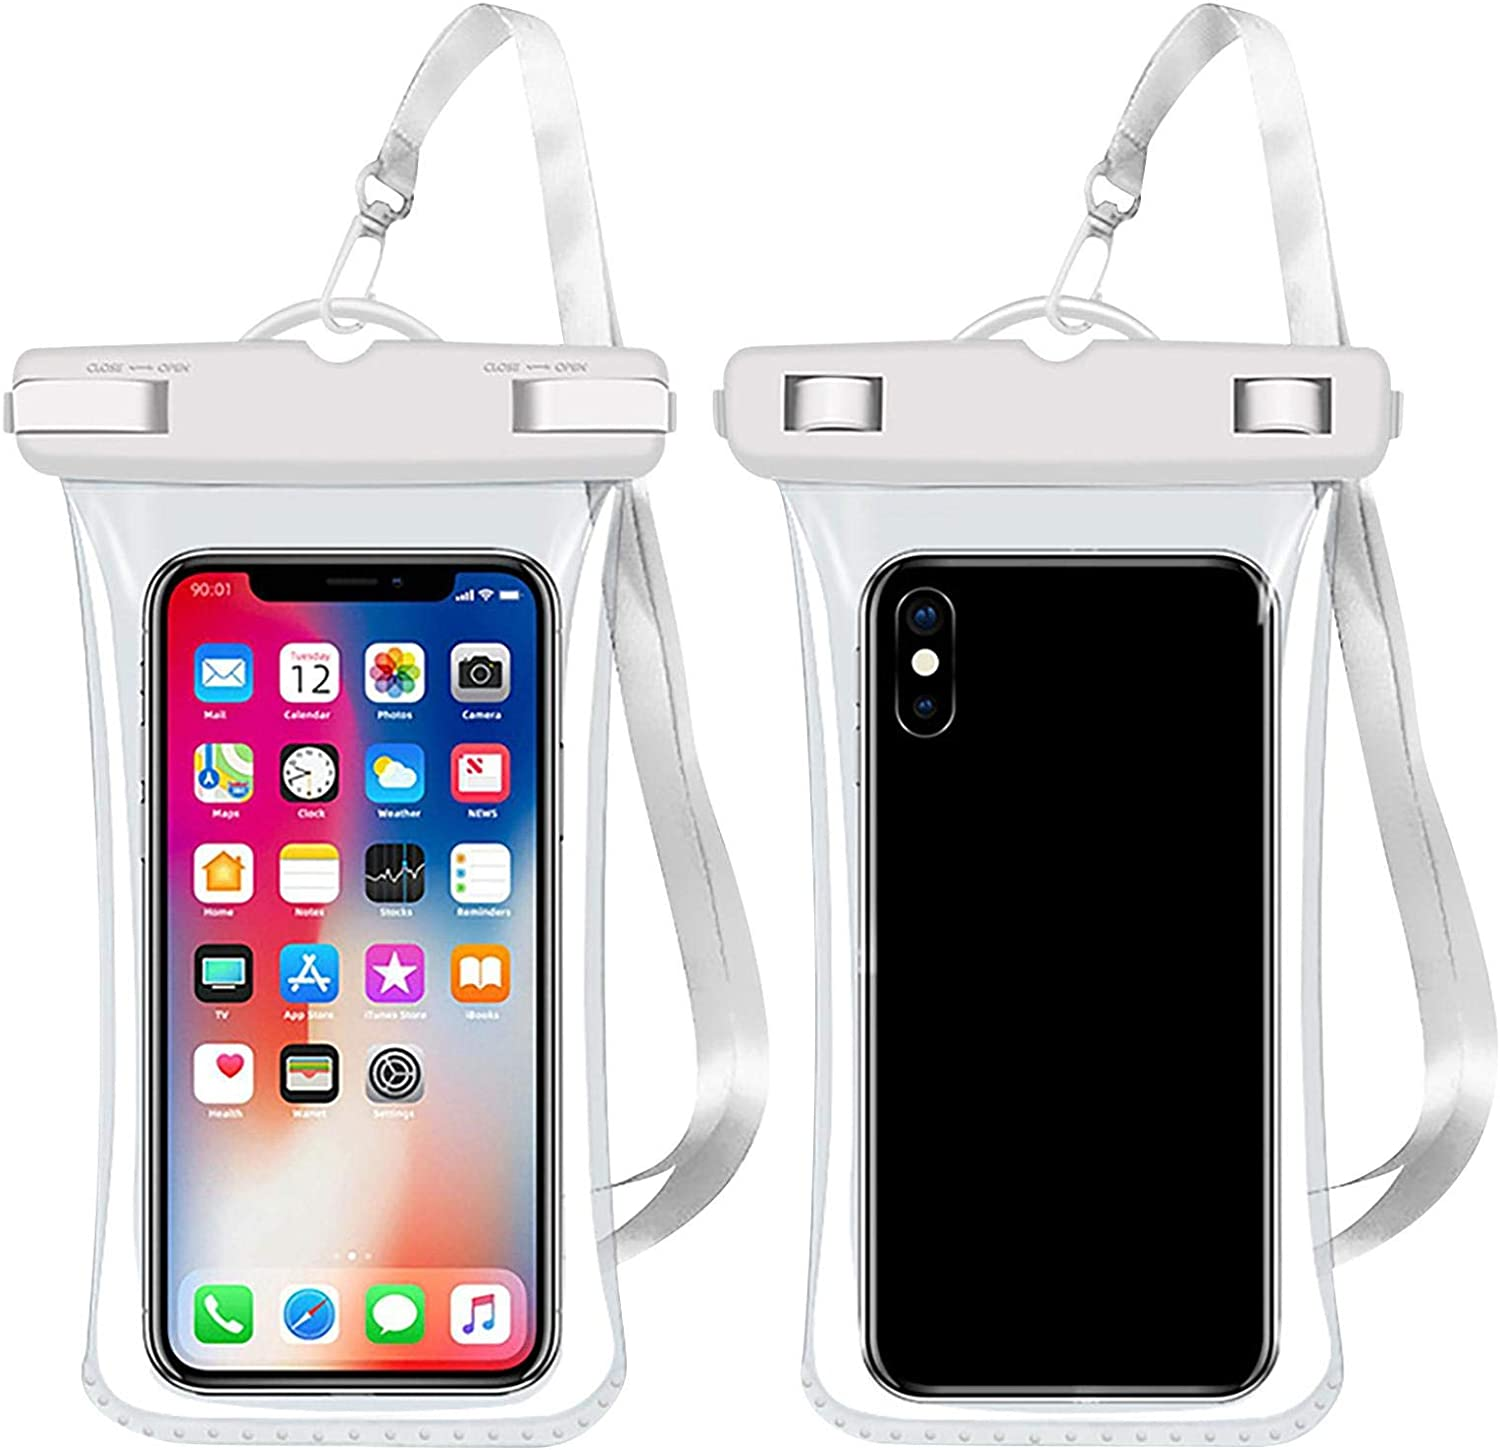 Universal Waterproof Case Cellphone Dry Bag Pouch for iPhone 12 Pro Max 11 Pro Max Xs Max XR XS X 8 7 6S Plus SE 2020, Galaxy S20 Ultra S10 S9 S8/Note 10 9 up to 6.0